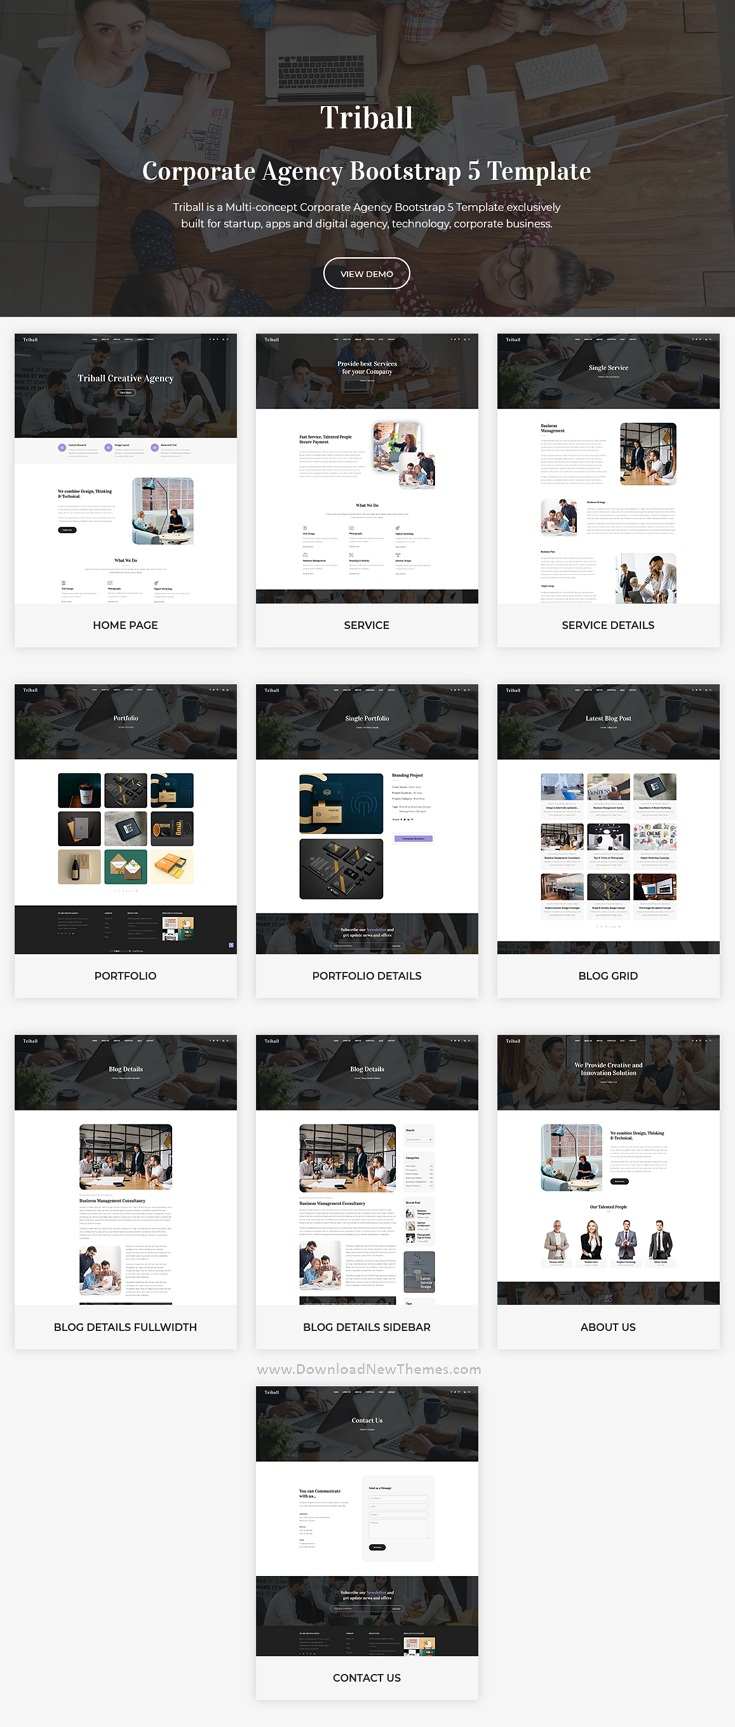 Corporate Agency Bootstrap 5 Template